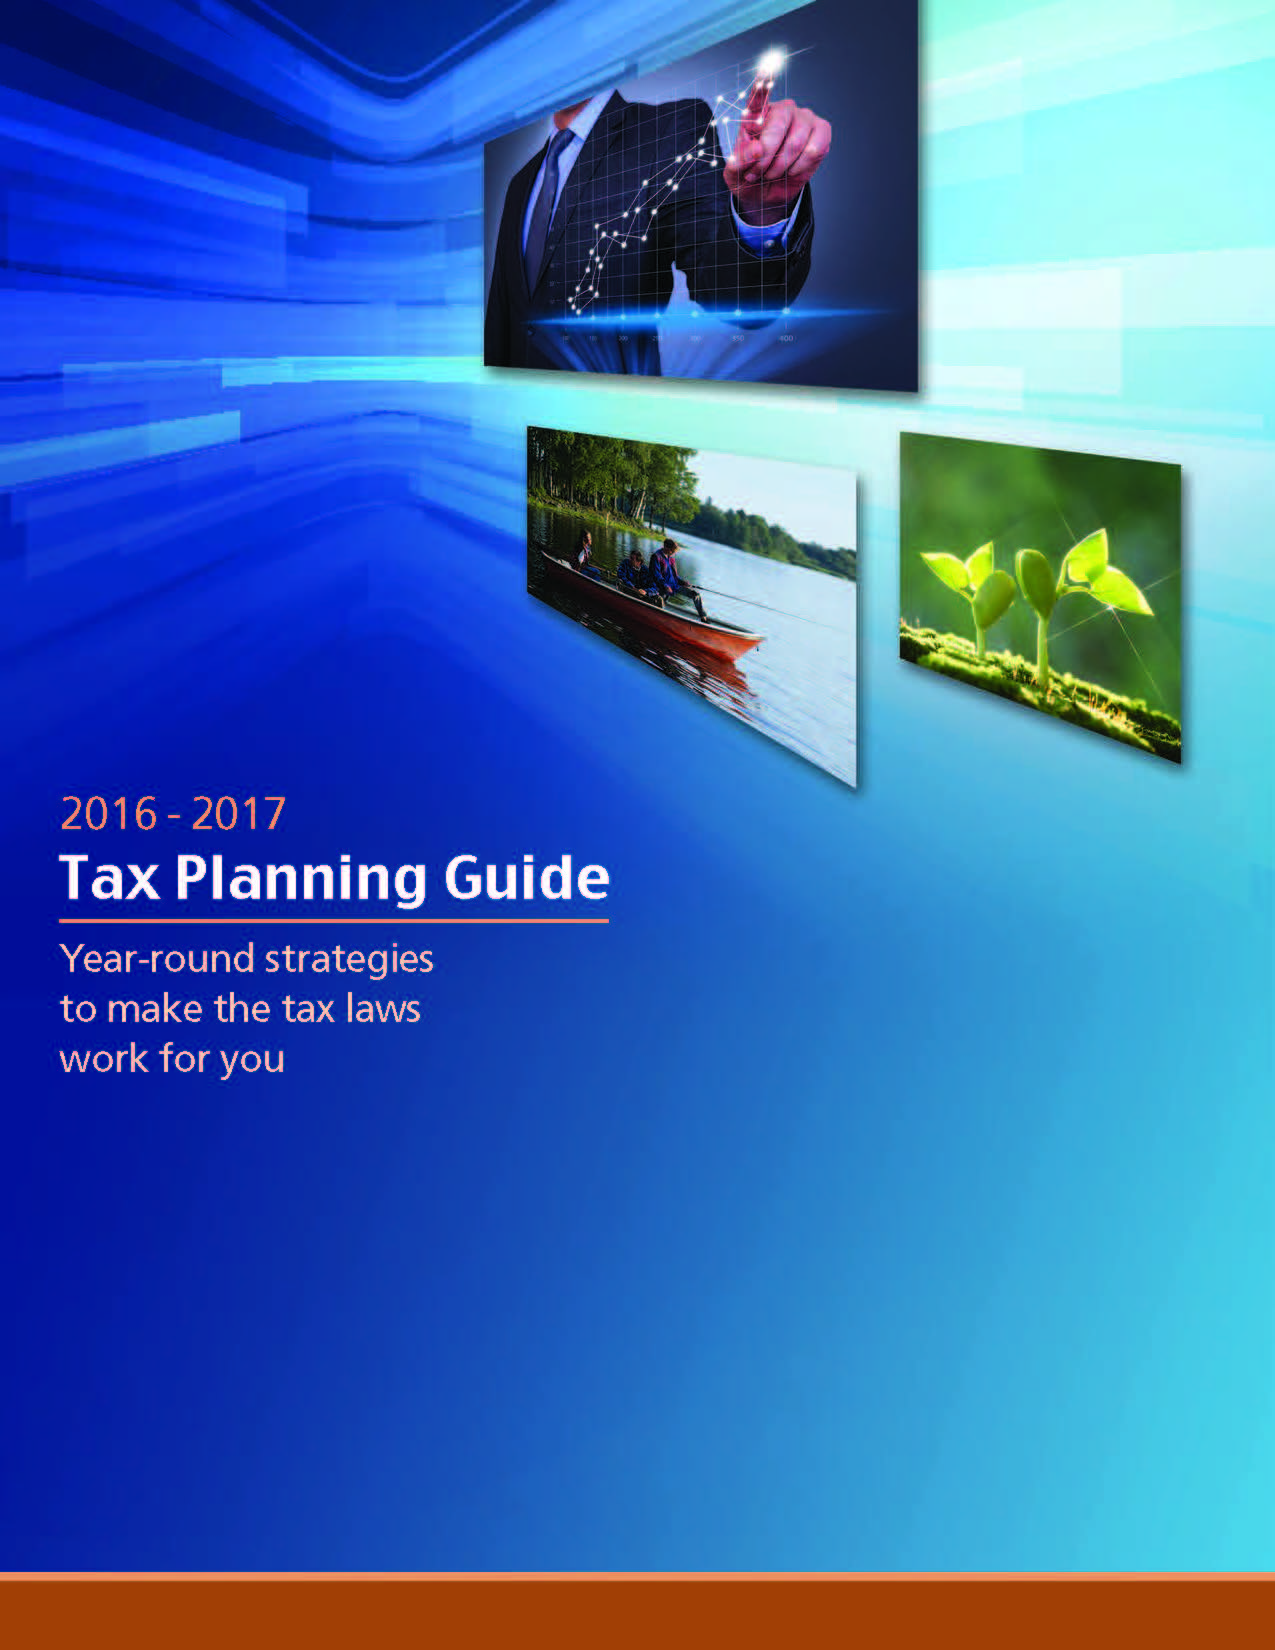 2016-2017 Tax Planning Guide